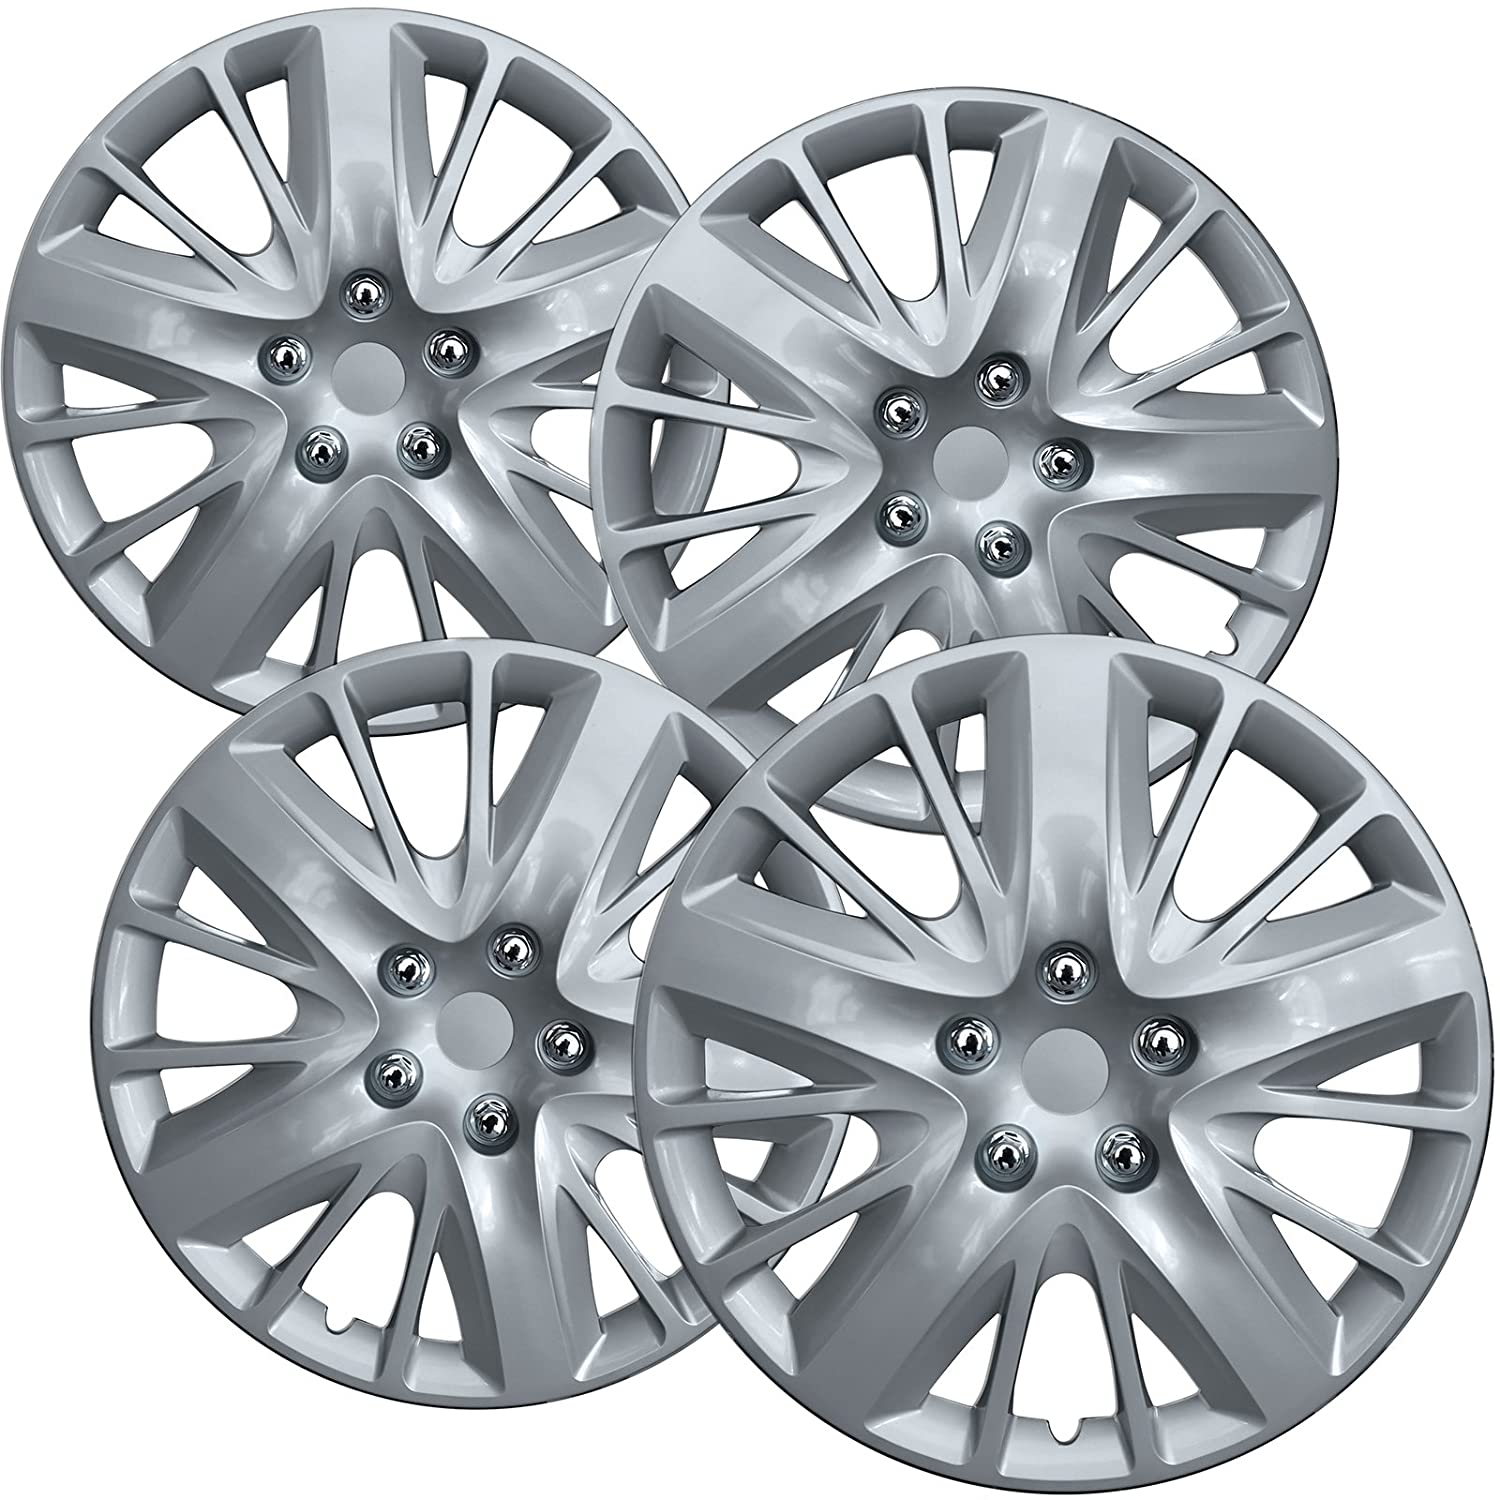 Hub Caps for 18in Wheels Rim Cover Hubcaps 18 inch Wheel Covers - Set of 4 Snap On Auto Tire Replacement Exterior Cap Car Accessories Silver Hubcap Best for 18inch Cars Standard Steel Rims